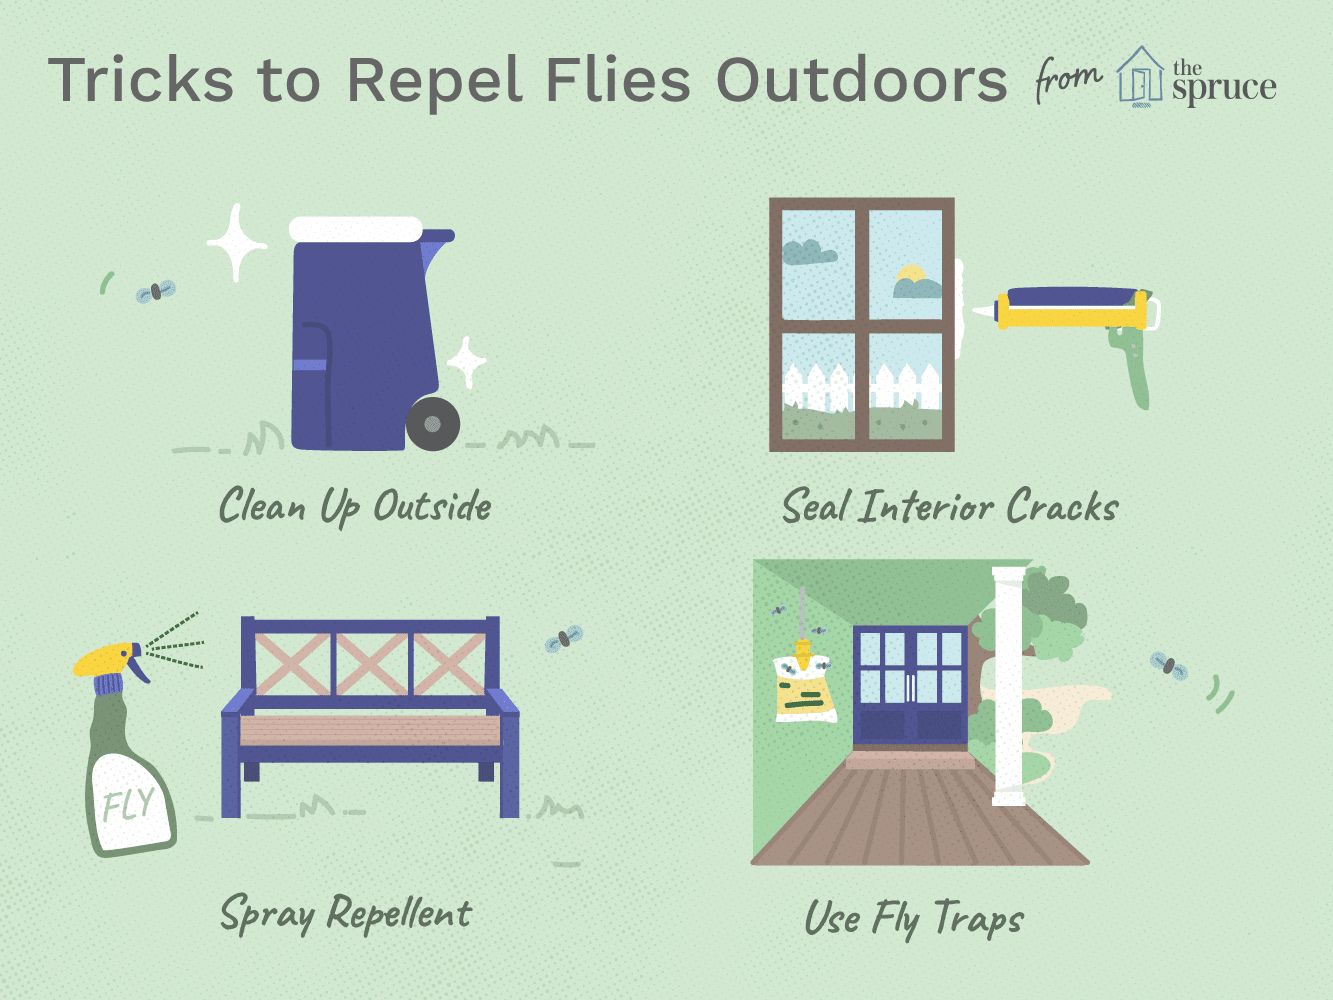 how to get rid flies outdoors